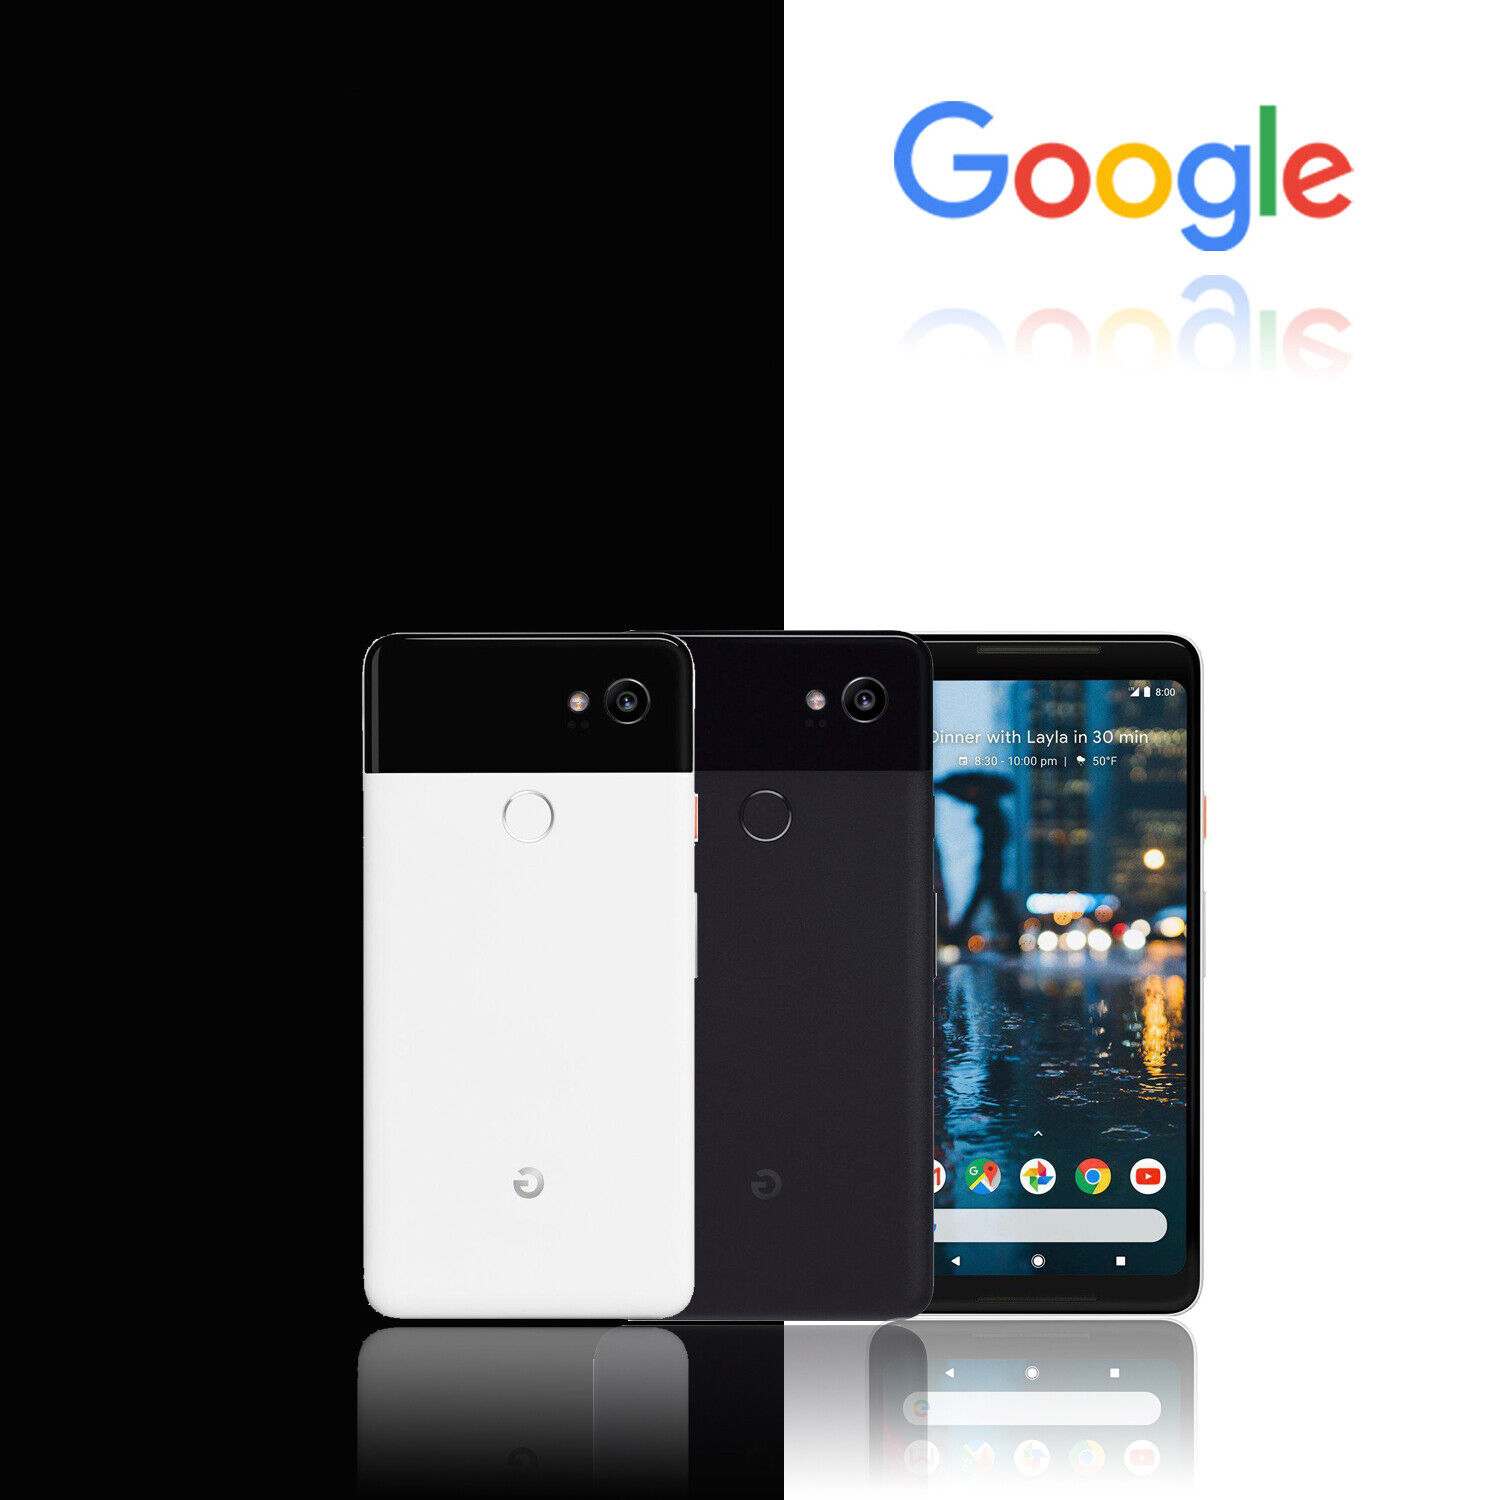 Google Pixel 2 XL - 64GB/128GB - Verizon GSM Unlocked Android 4G Smartphone